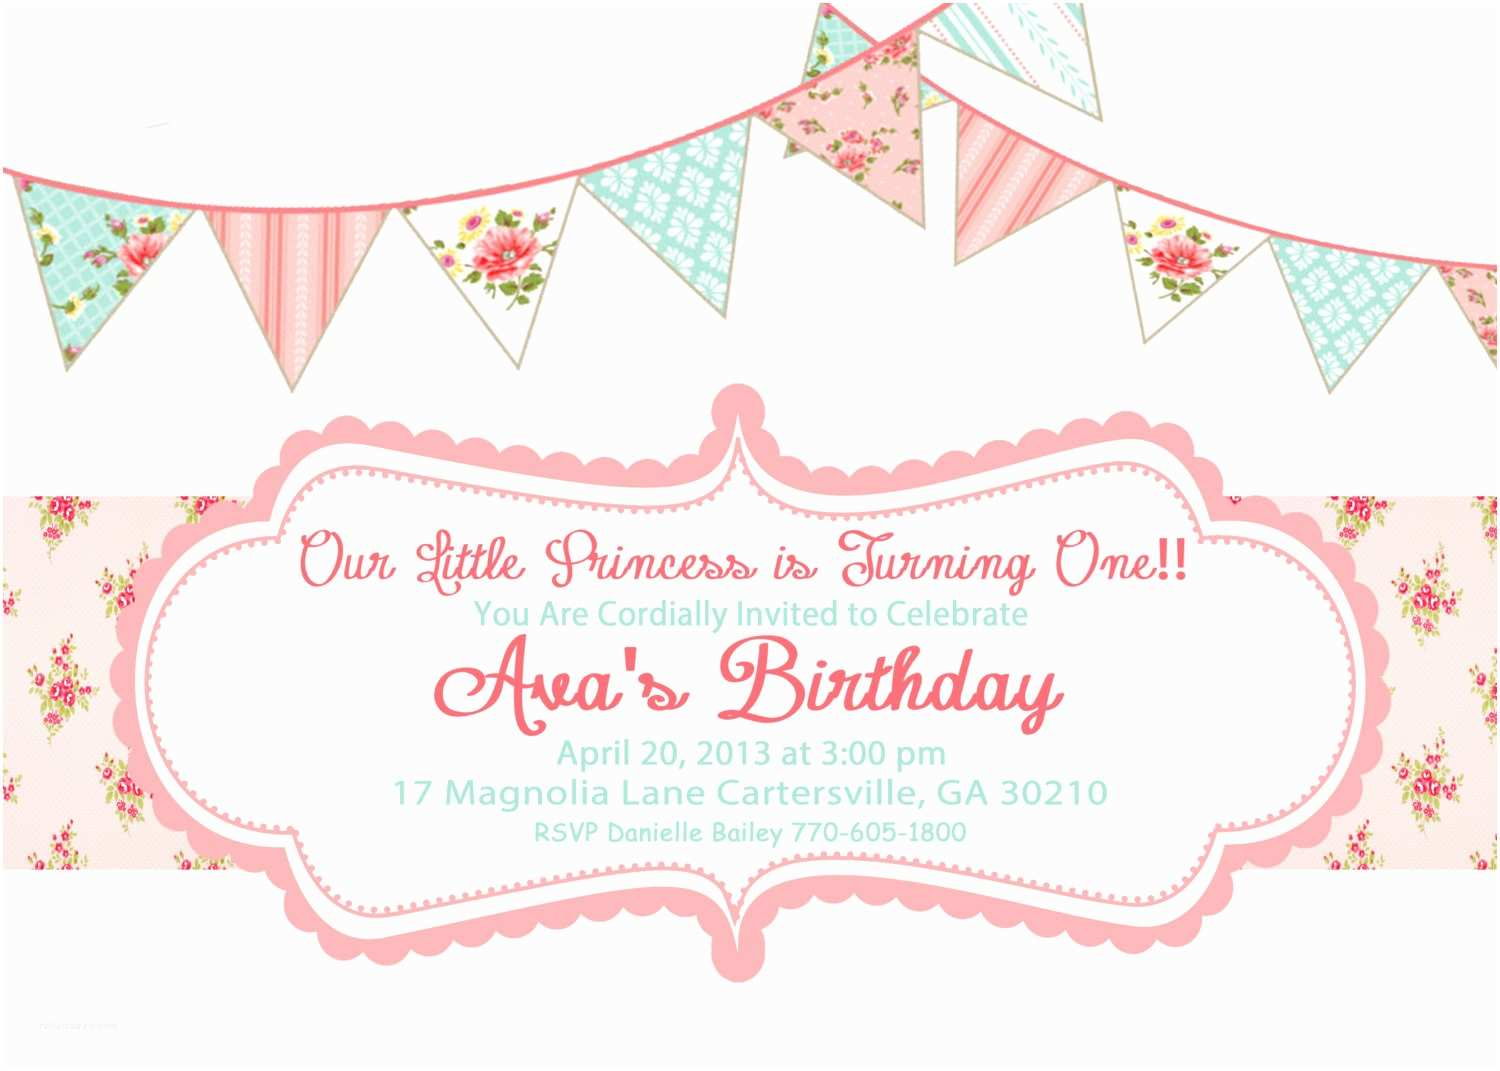 Shabby Chic Baby Shower Invitations Shabby Chic Baby Shower Invitations Shabby Chic Baby